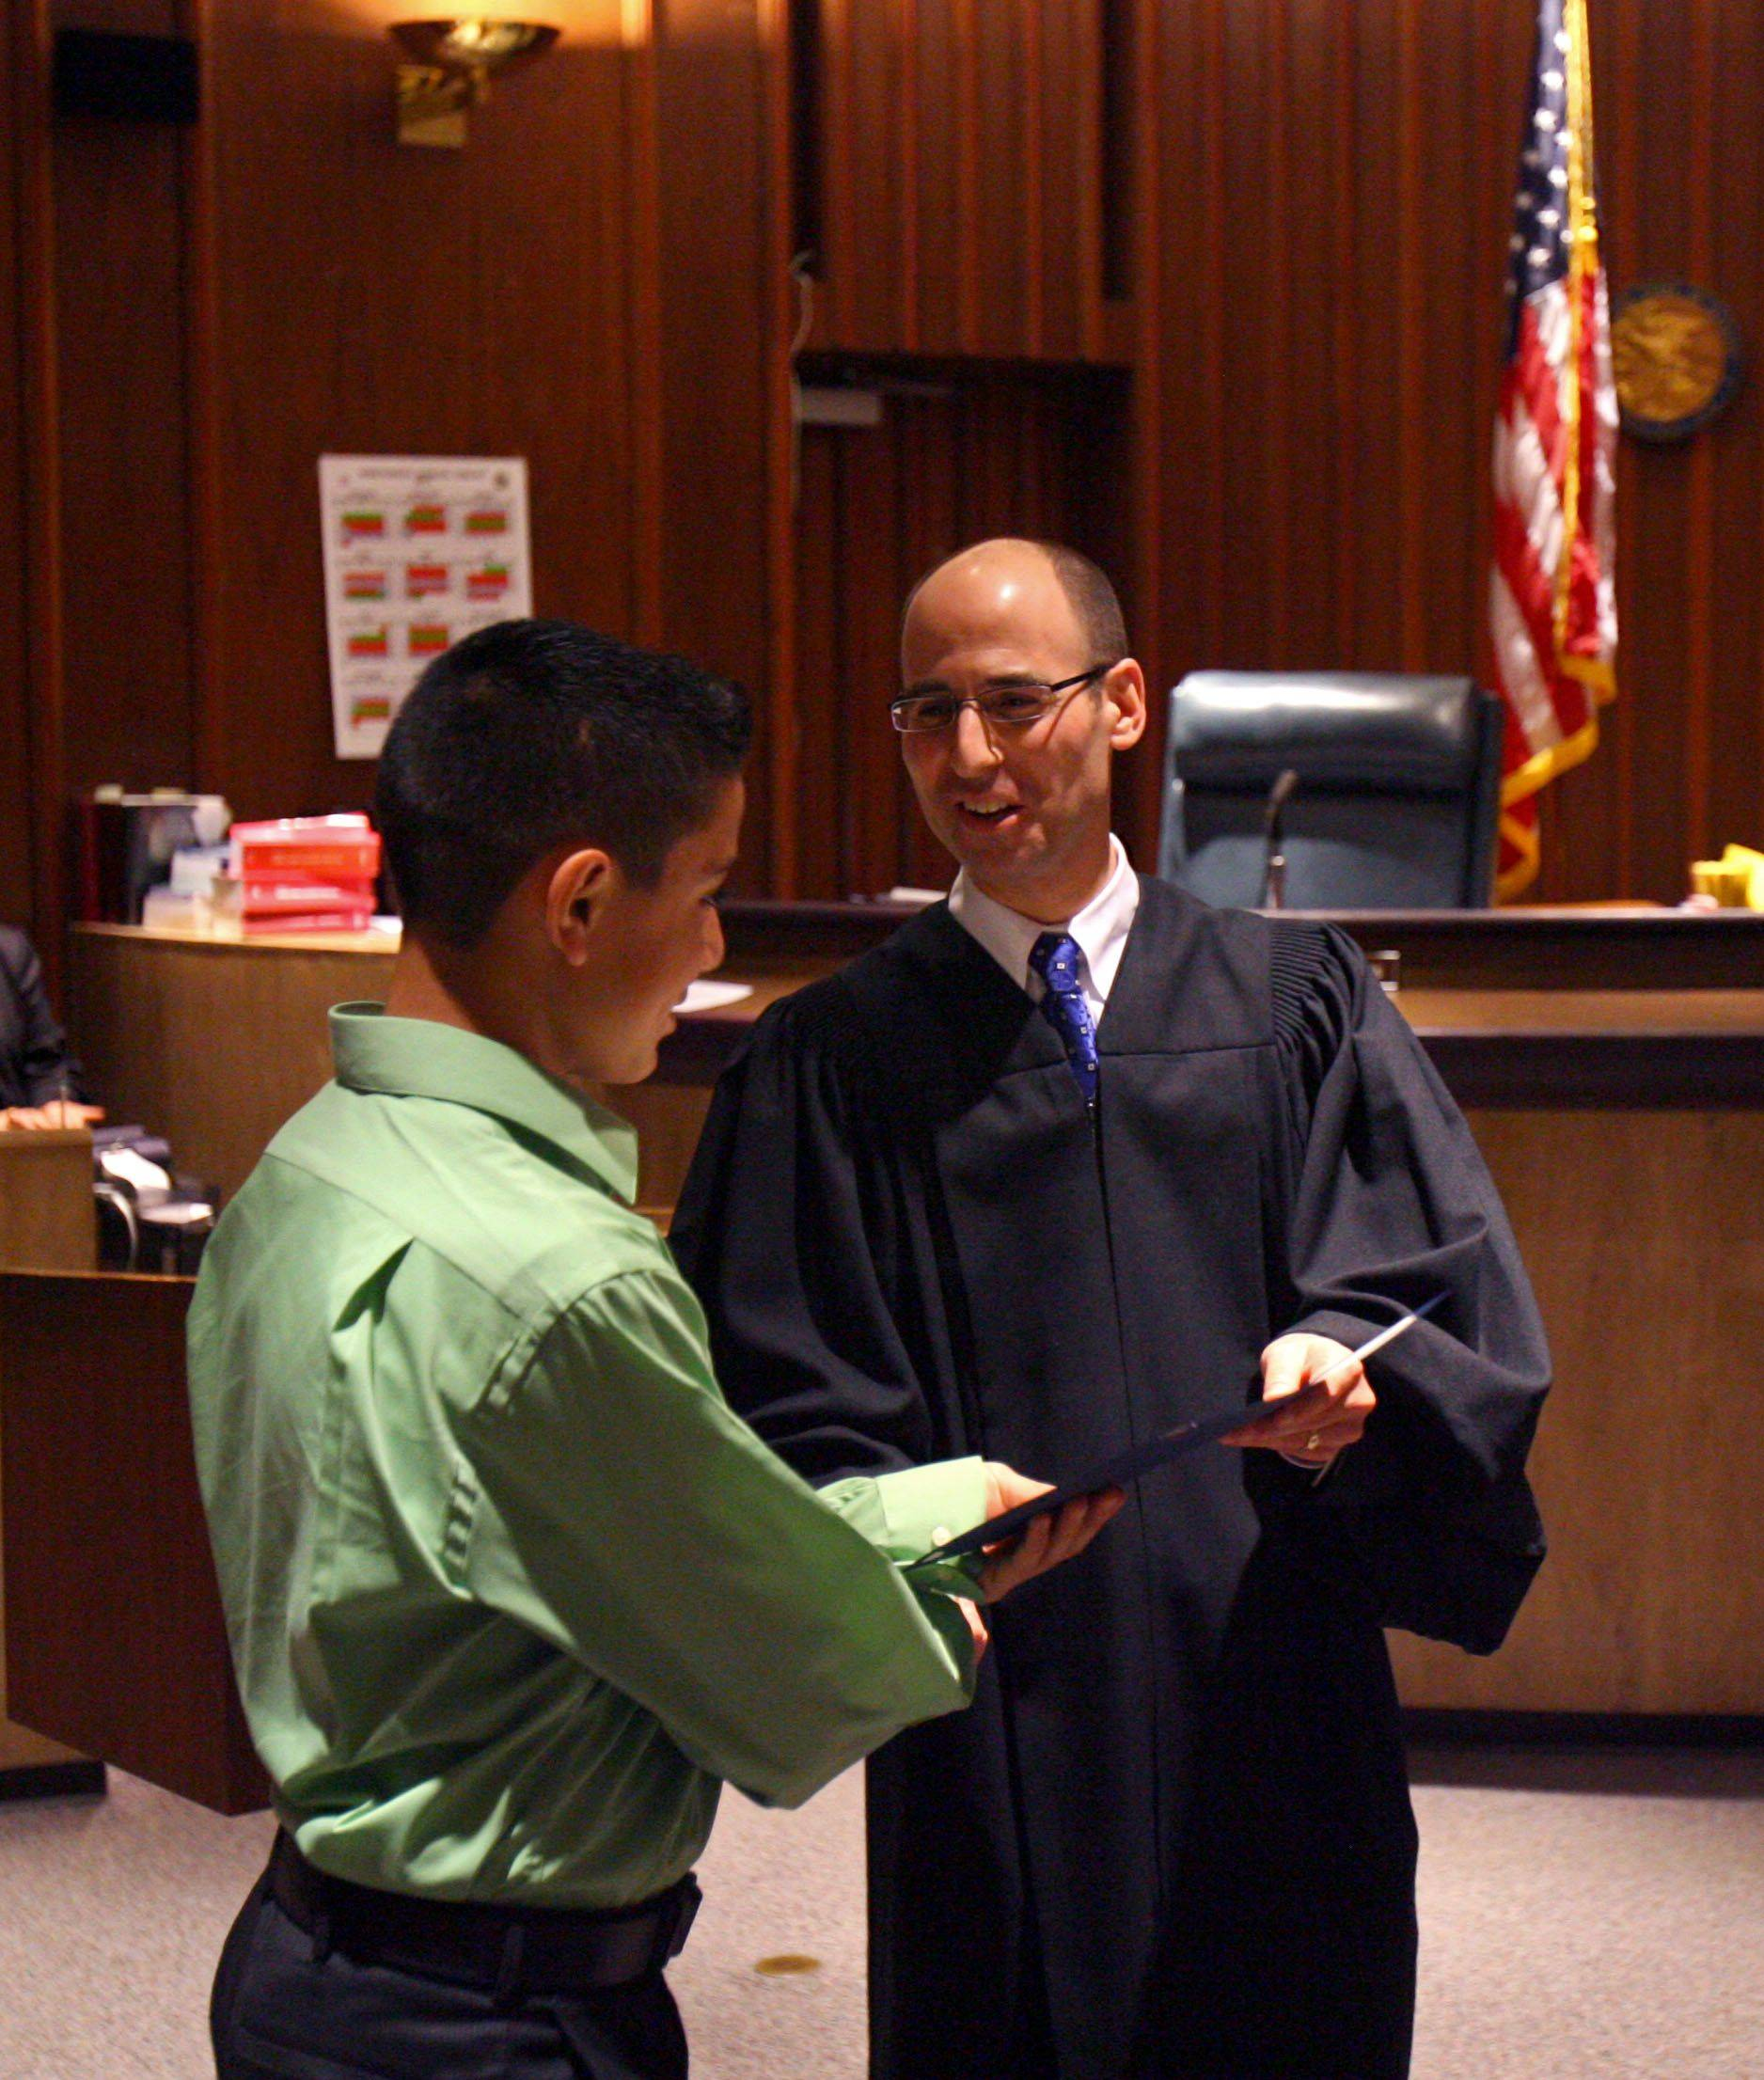 West Oak Middle School student Jose Gonzales receives a certificate of achievement from Judge Daniel B. Shanes at the Lake County Courthouse in Waukegan Friday. The ceremony was for kids who were successful in making better choices.